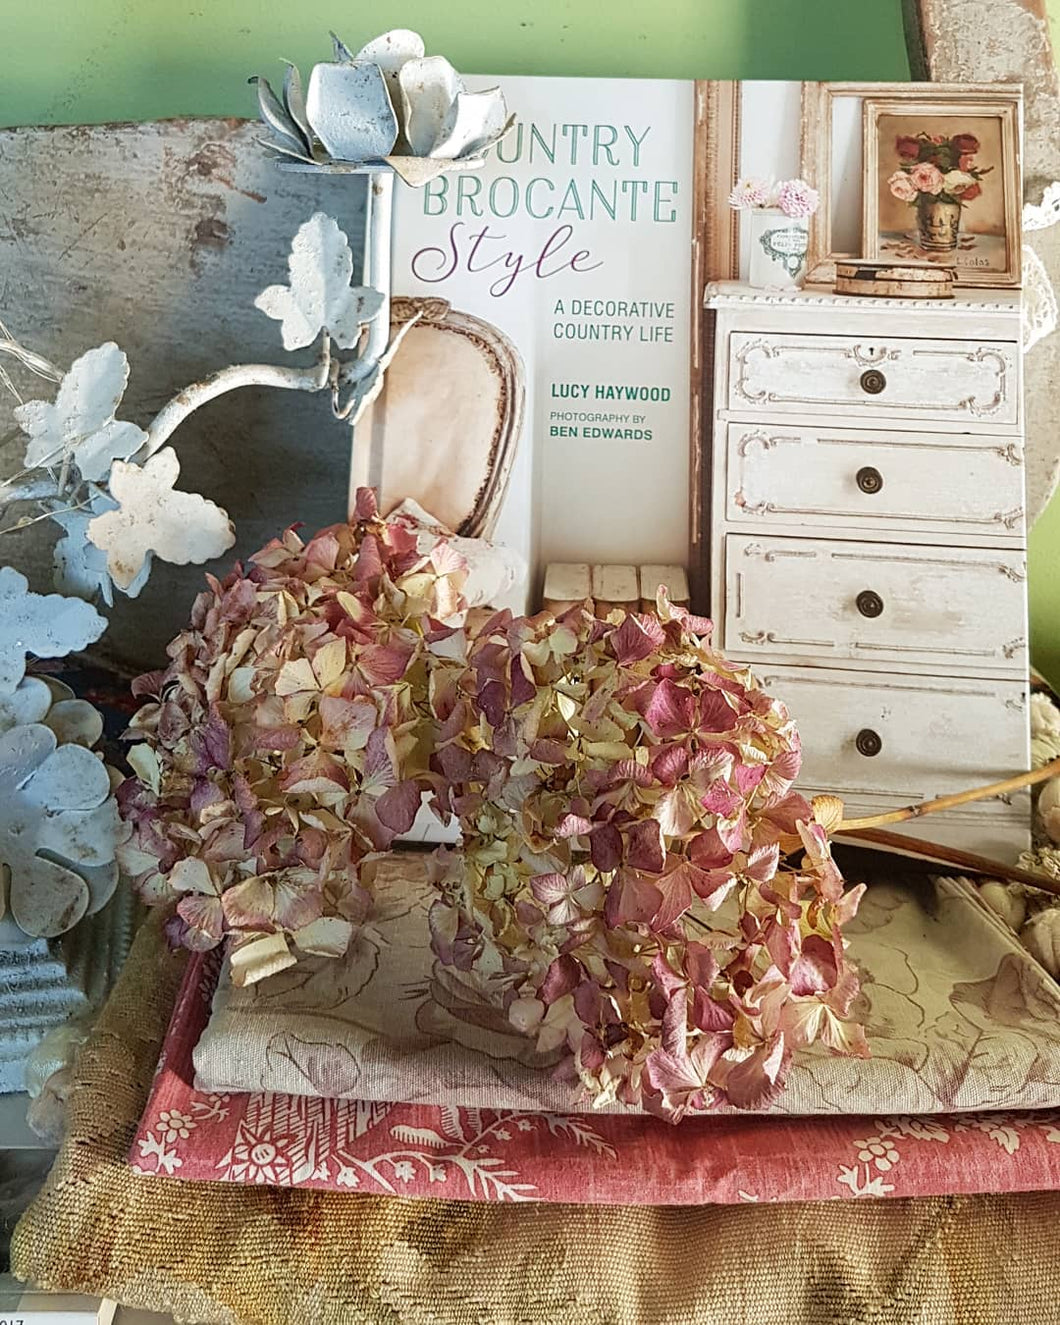 Country Brocante Style by Lucy Harwood